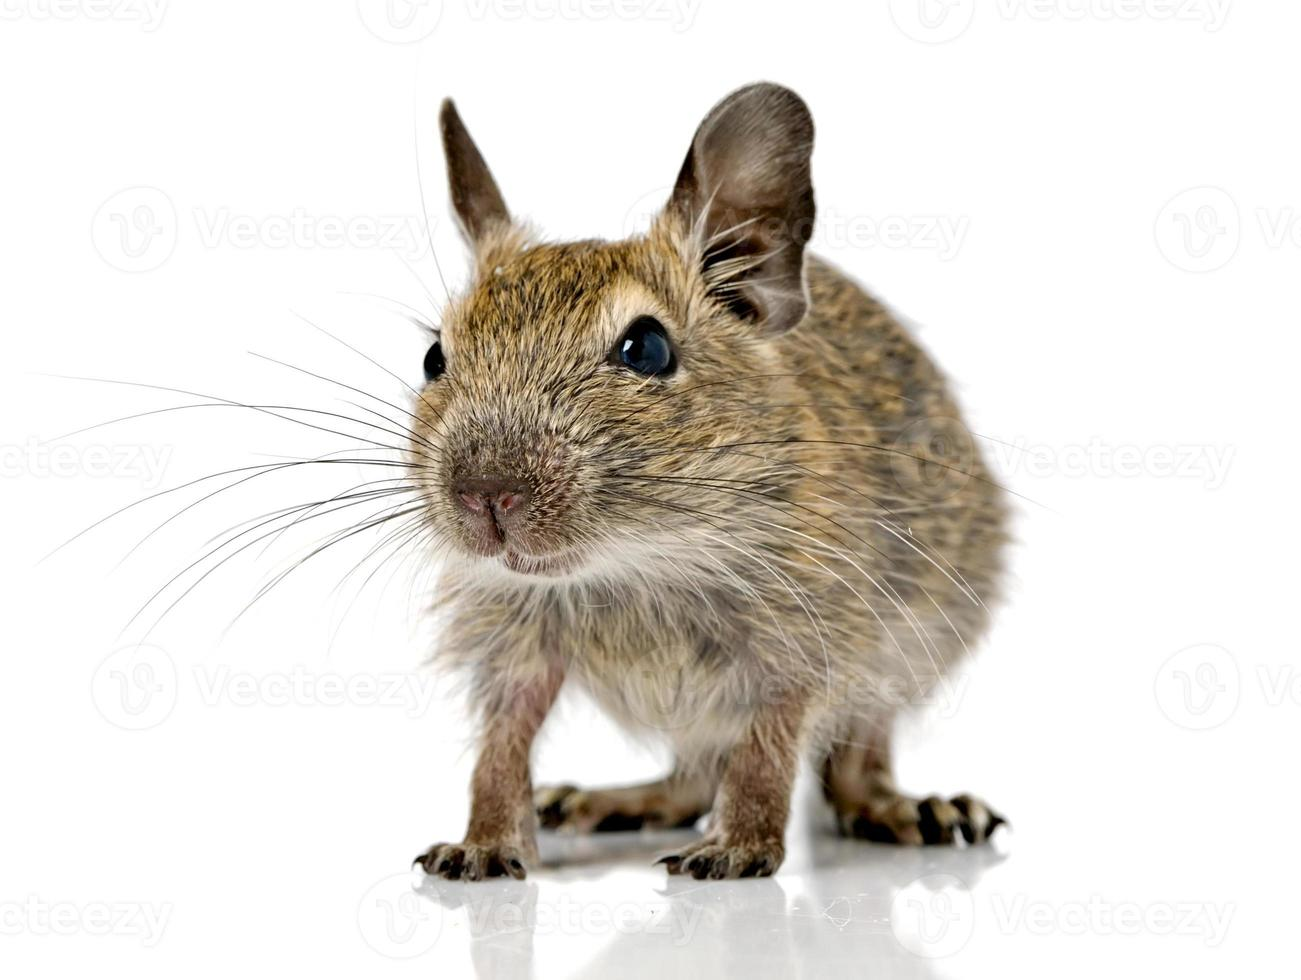 adorable petit bébé rongeur degu pet photo